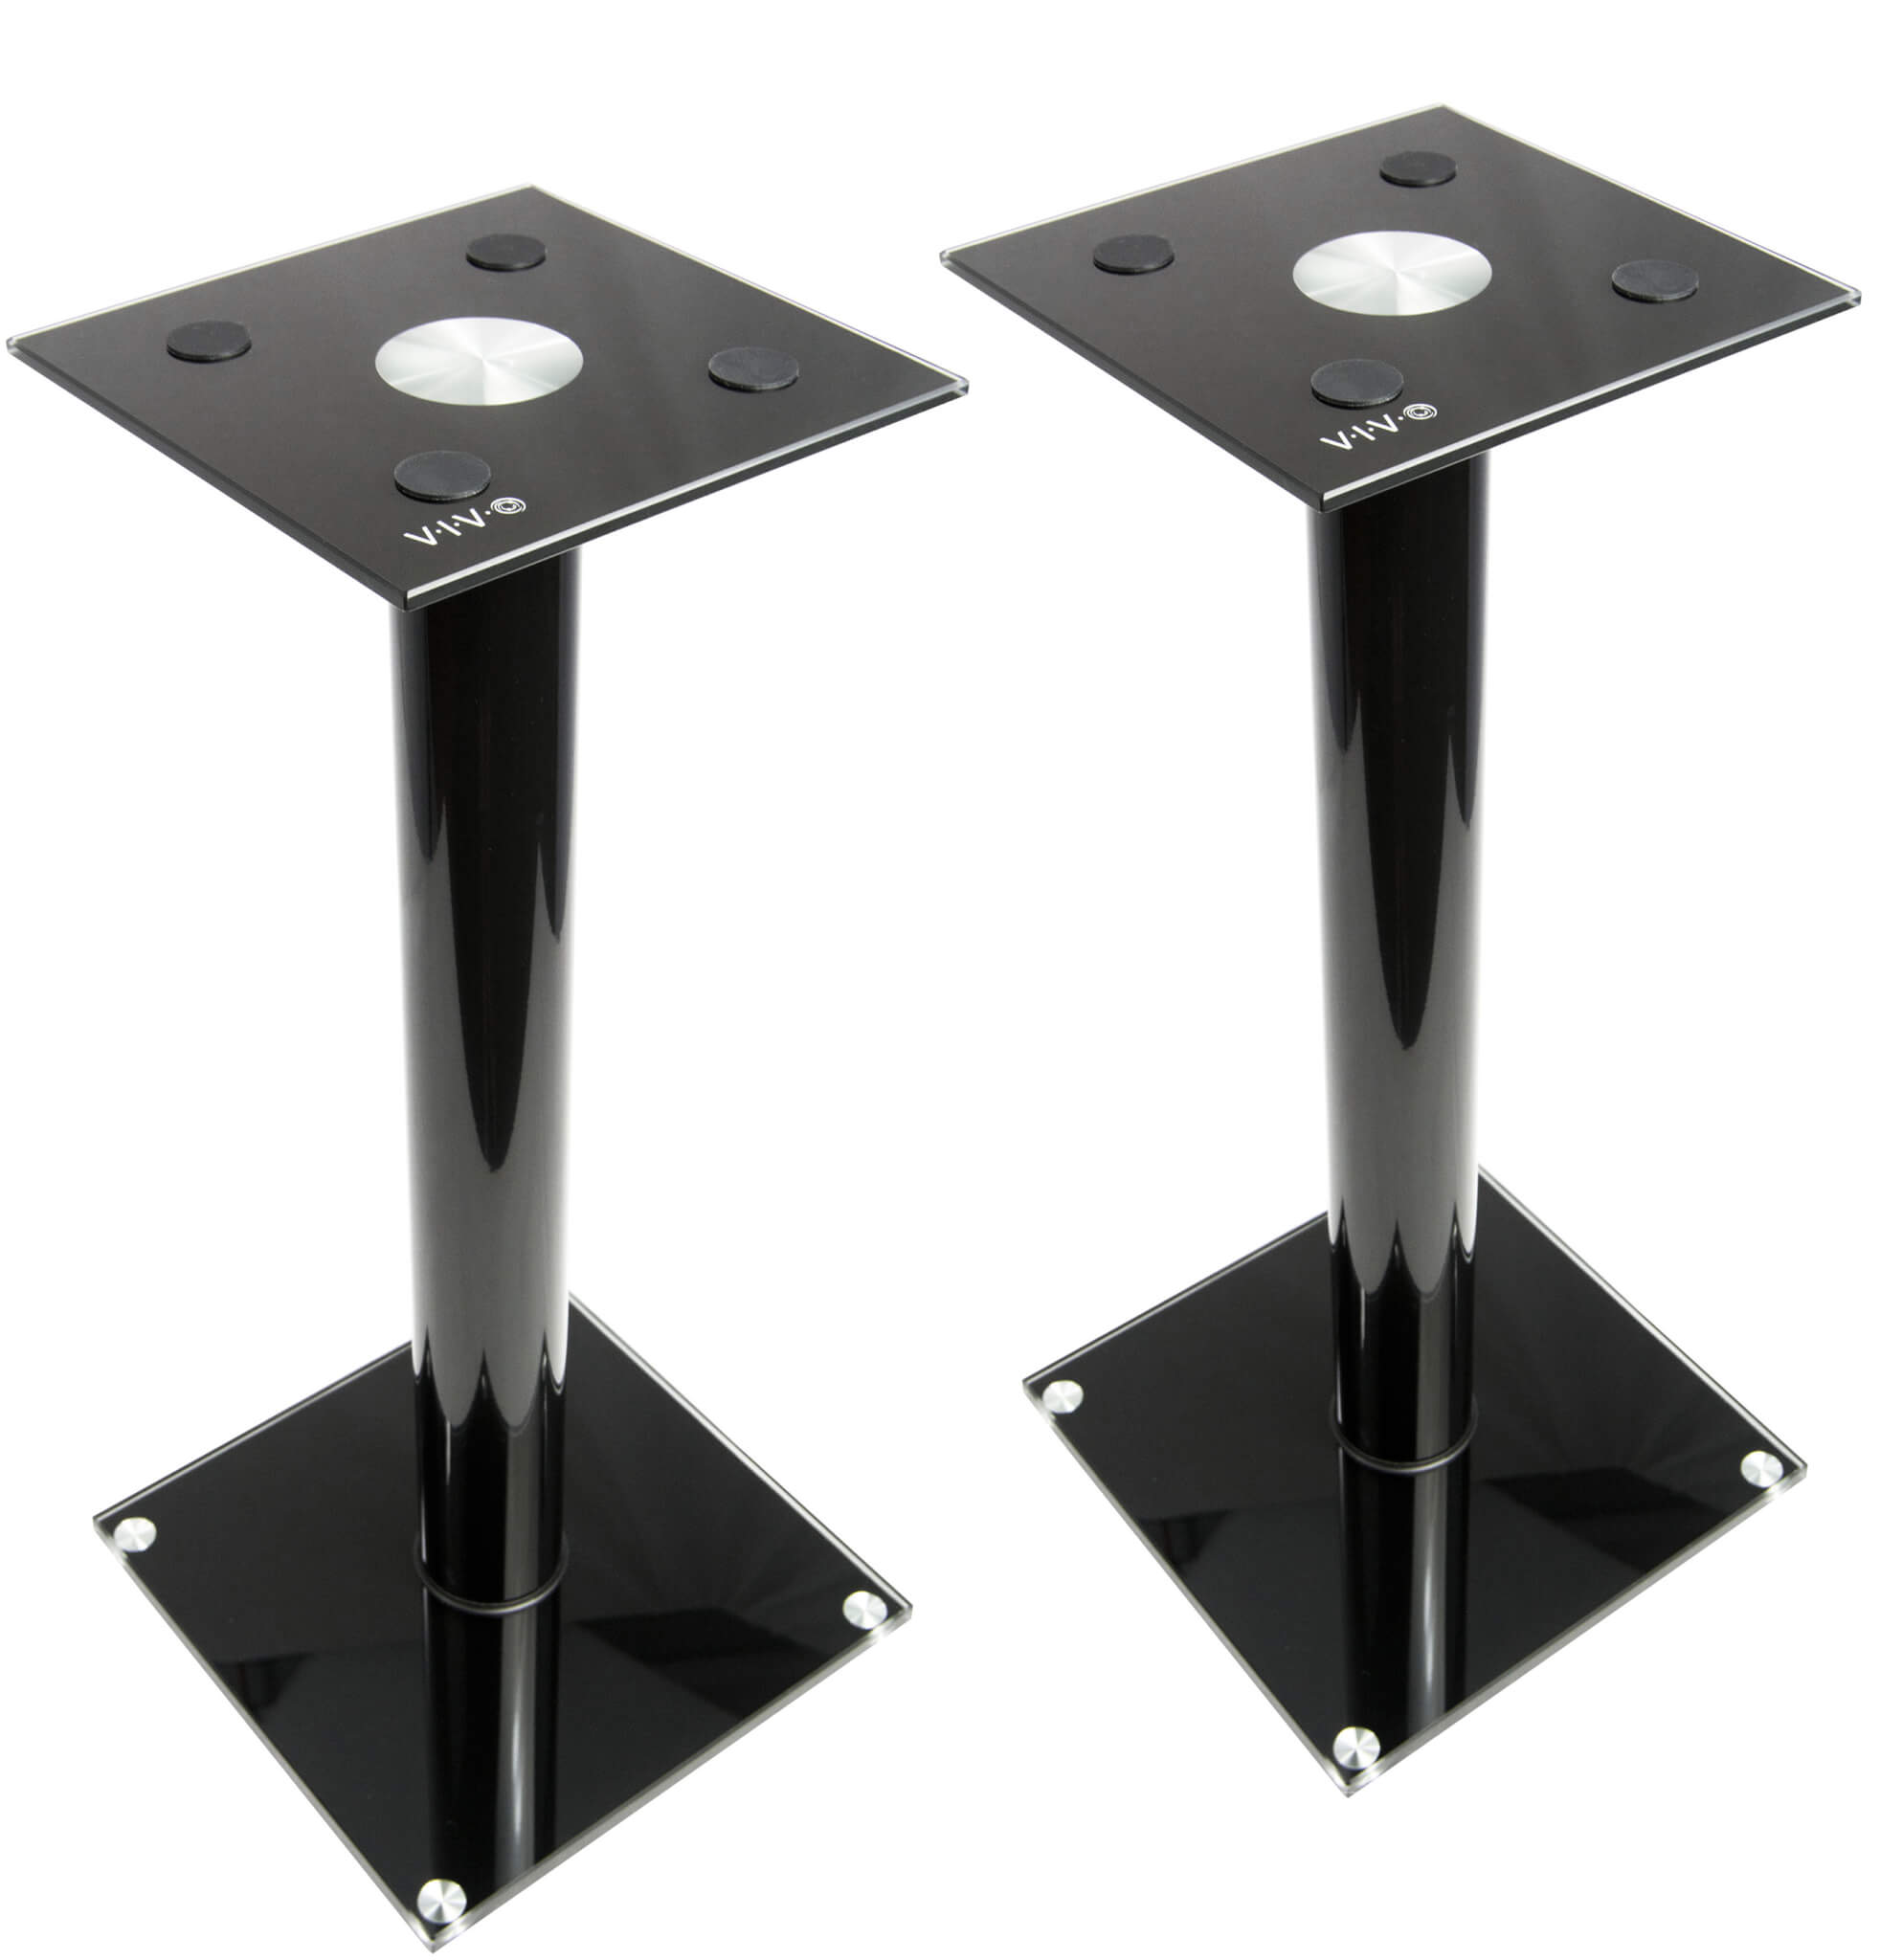 VIVO Premium Universal Floor Speaker Stands for Surround Sound